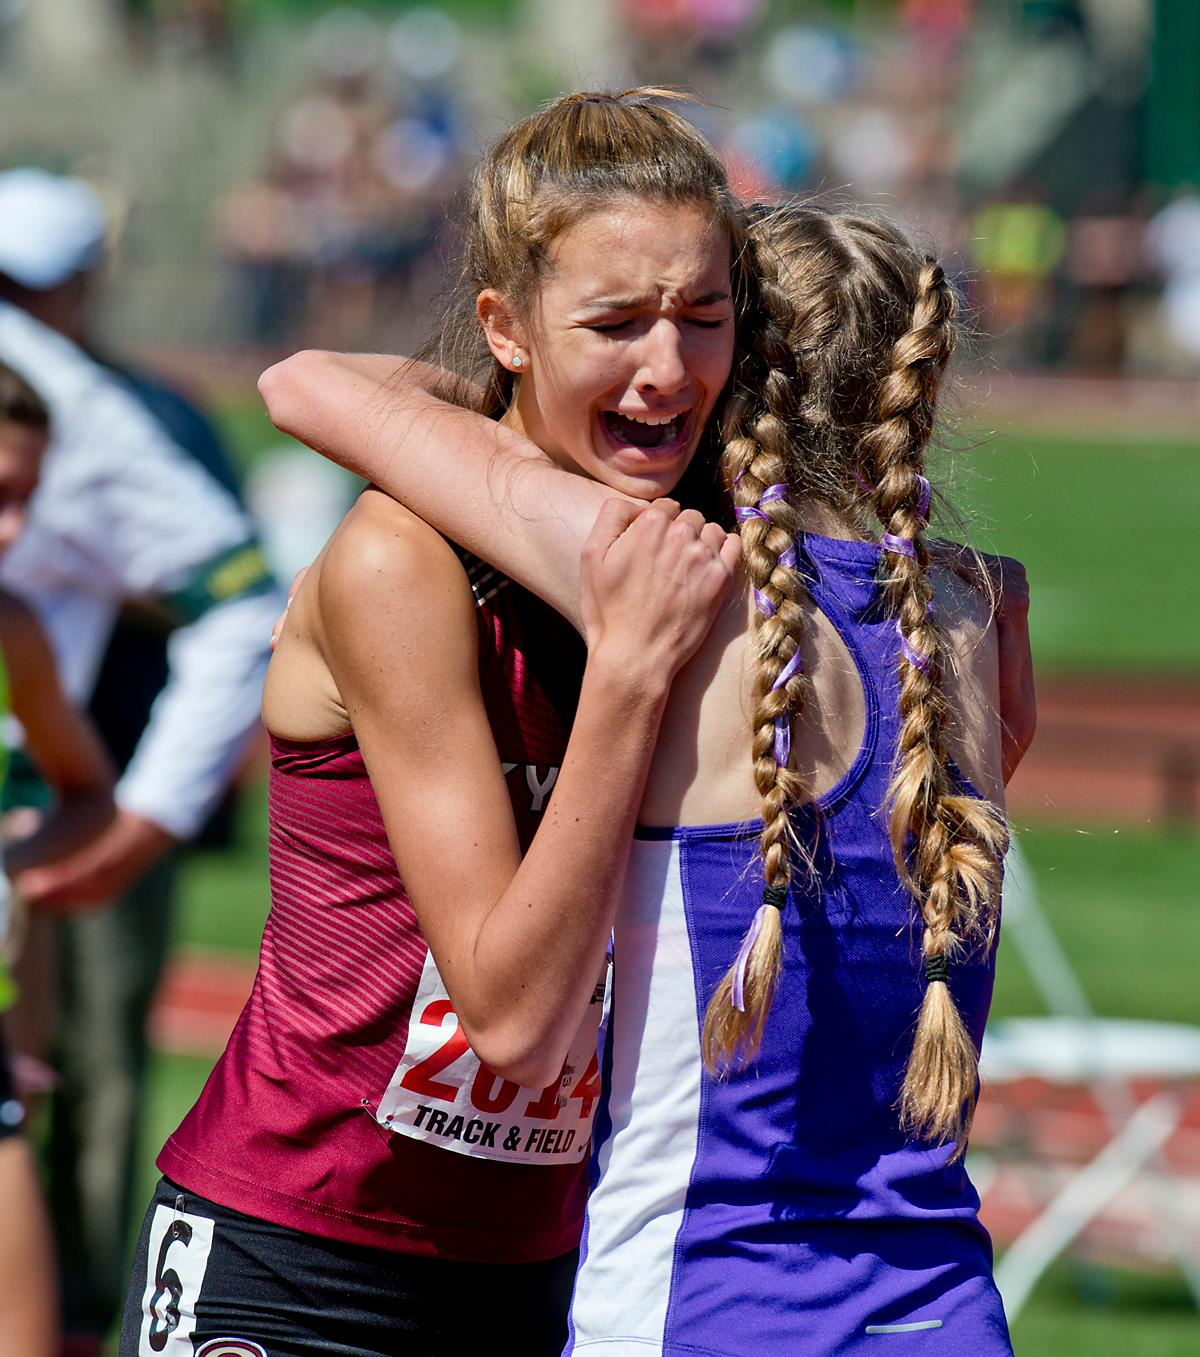 Competitors congratulate each other after a race at the OSAA Championship at Hayward Field on Saturday. Photo by Dan Morrison, Oregon News Lab